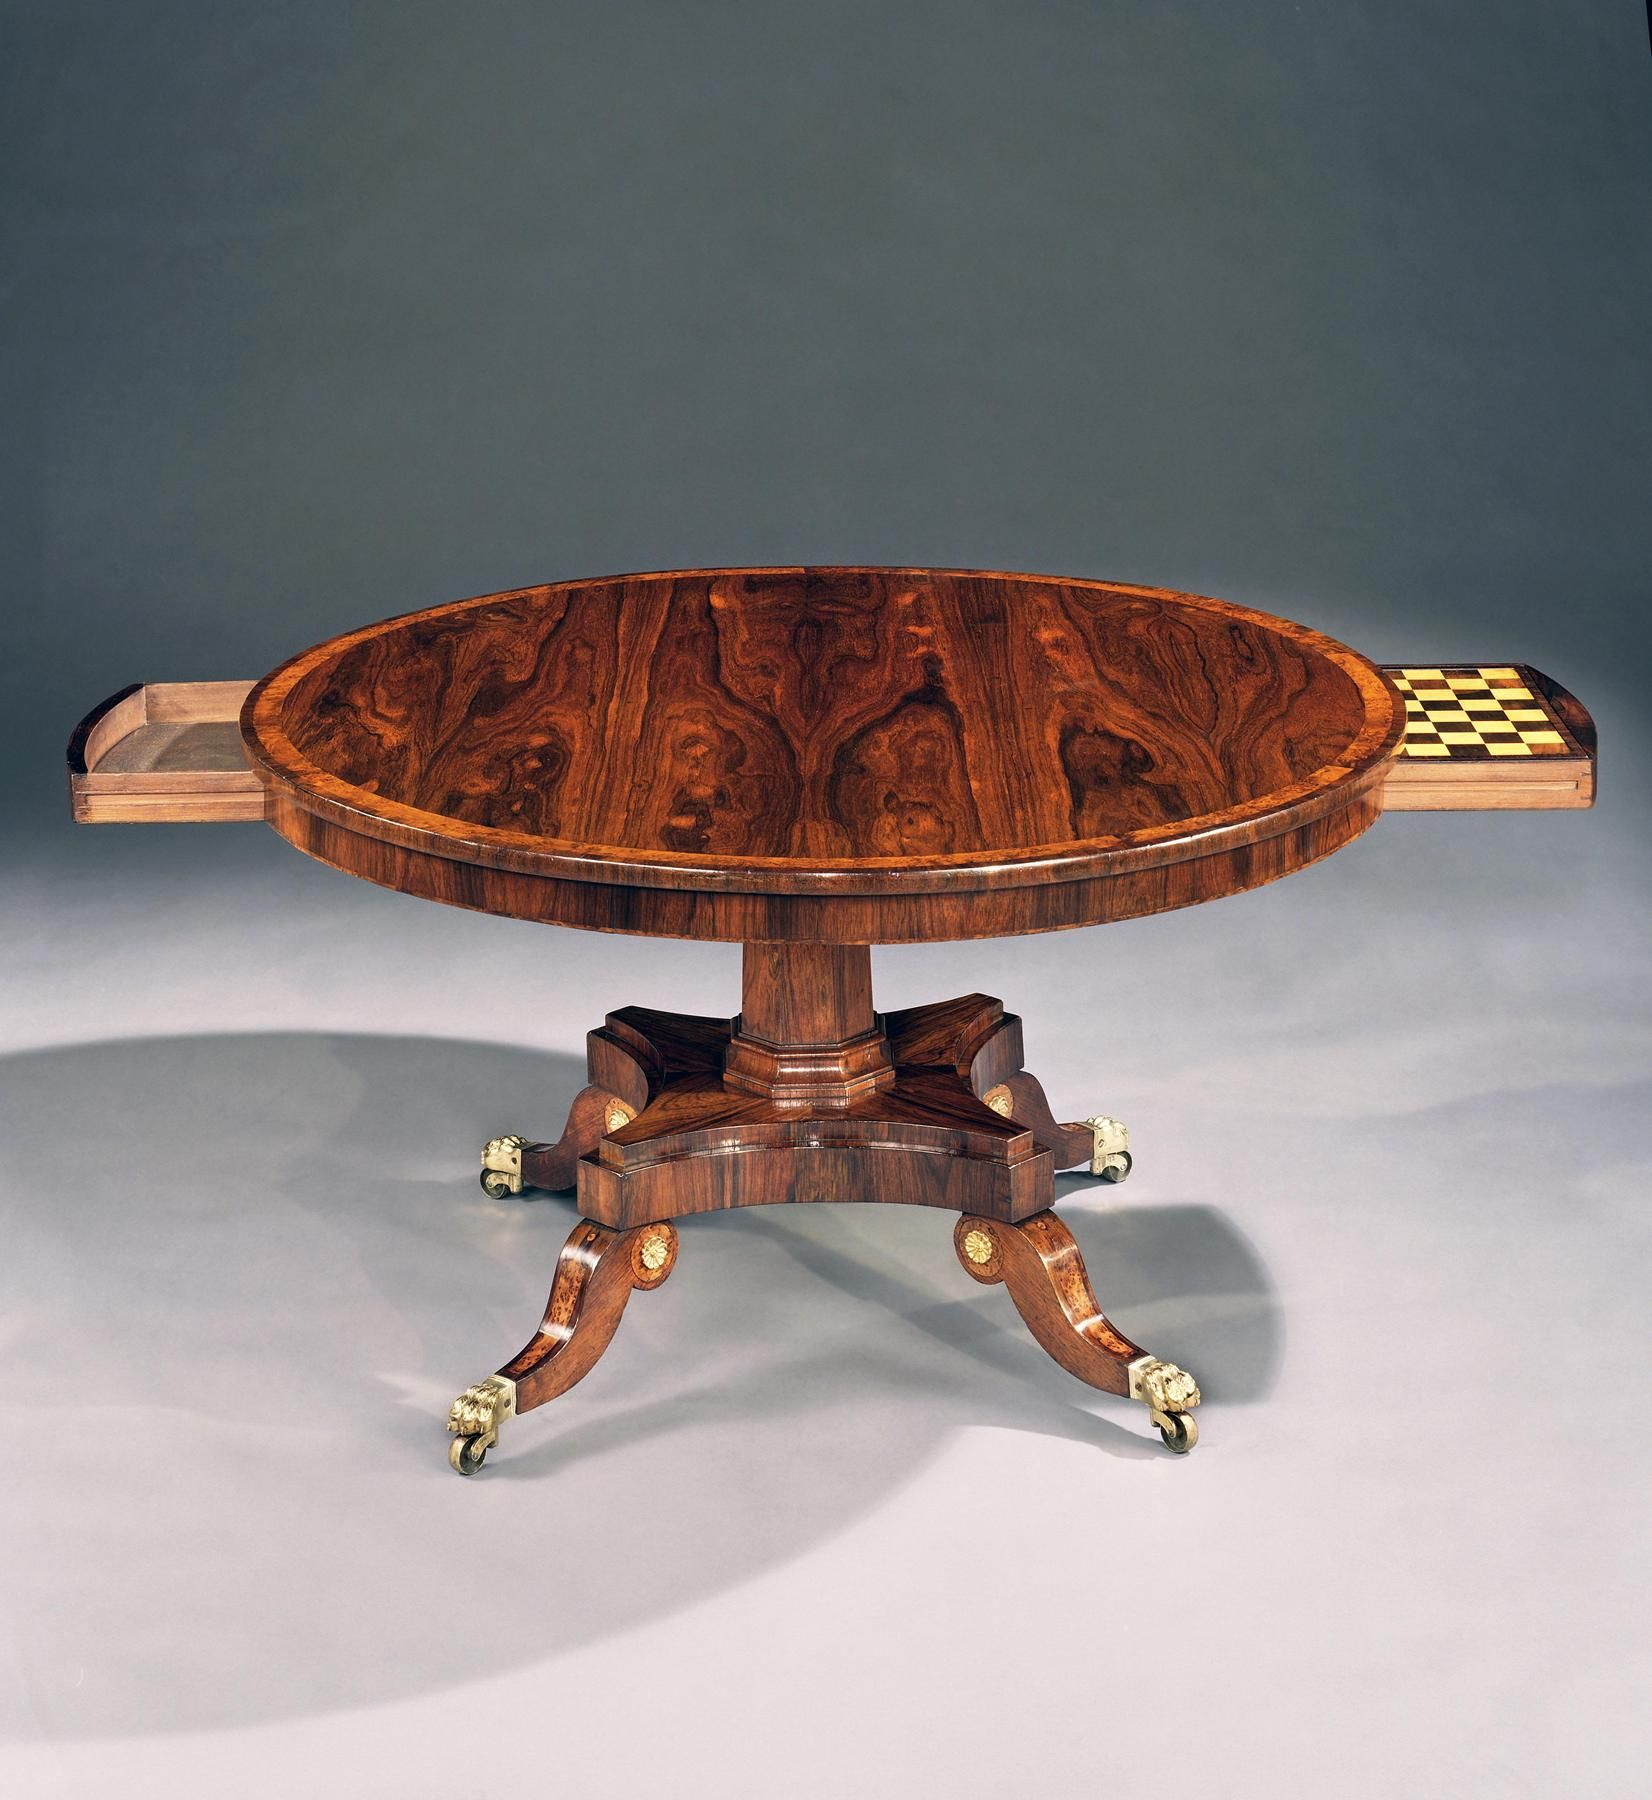 A Most Unusual Early 19th Century Regency Rosewood Circular Breakfast Table The Tilt Top Banded In Burr Yew And Fitted With Two Drawers